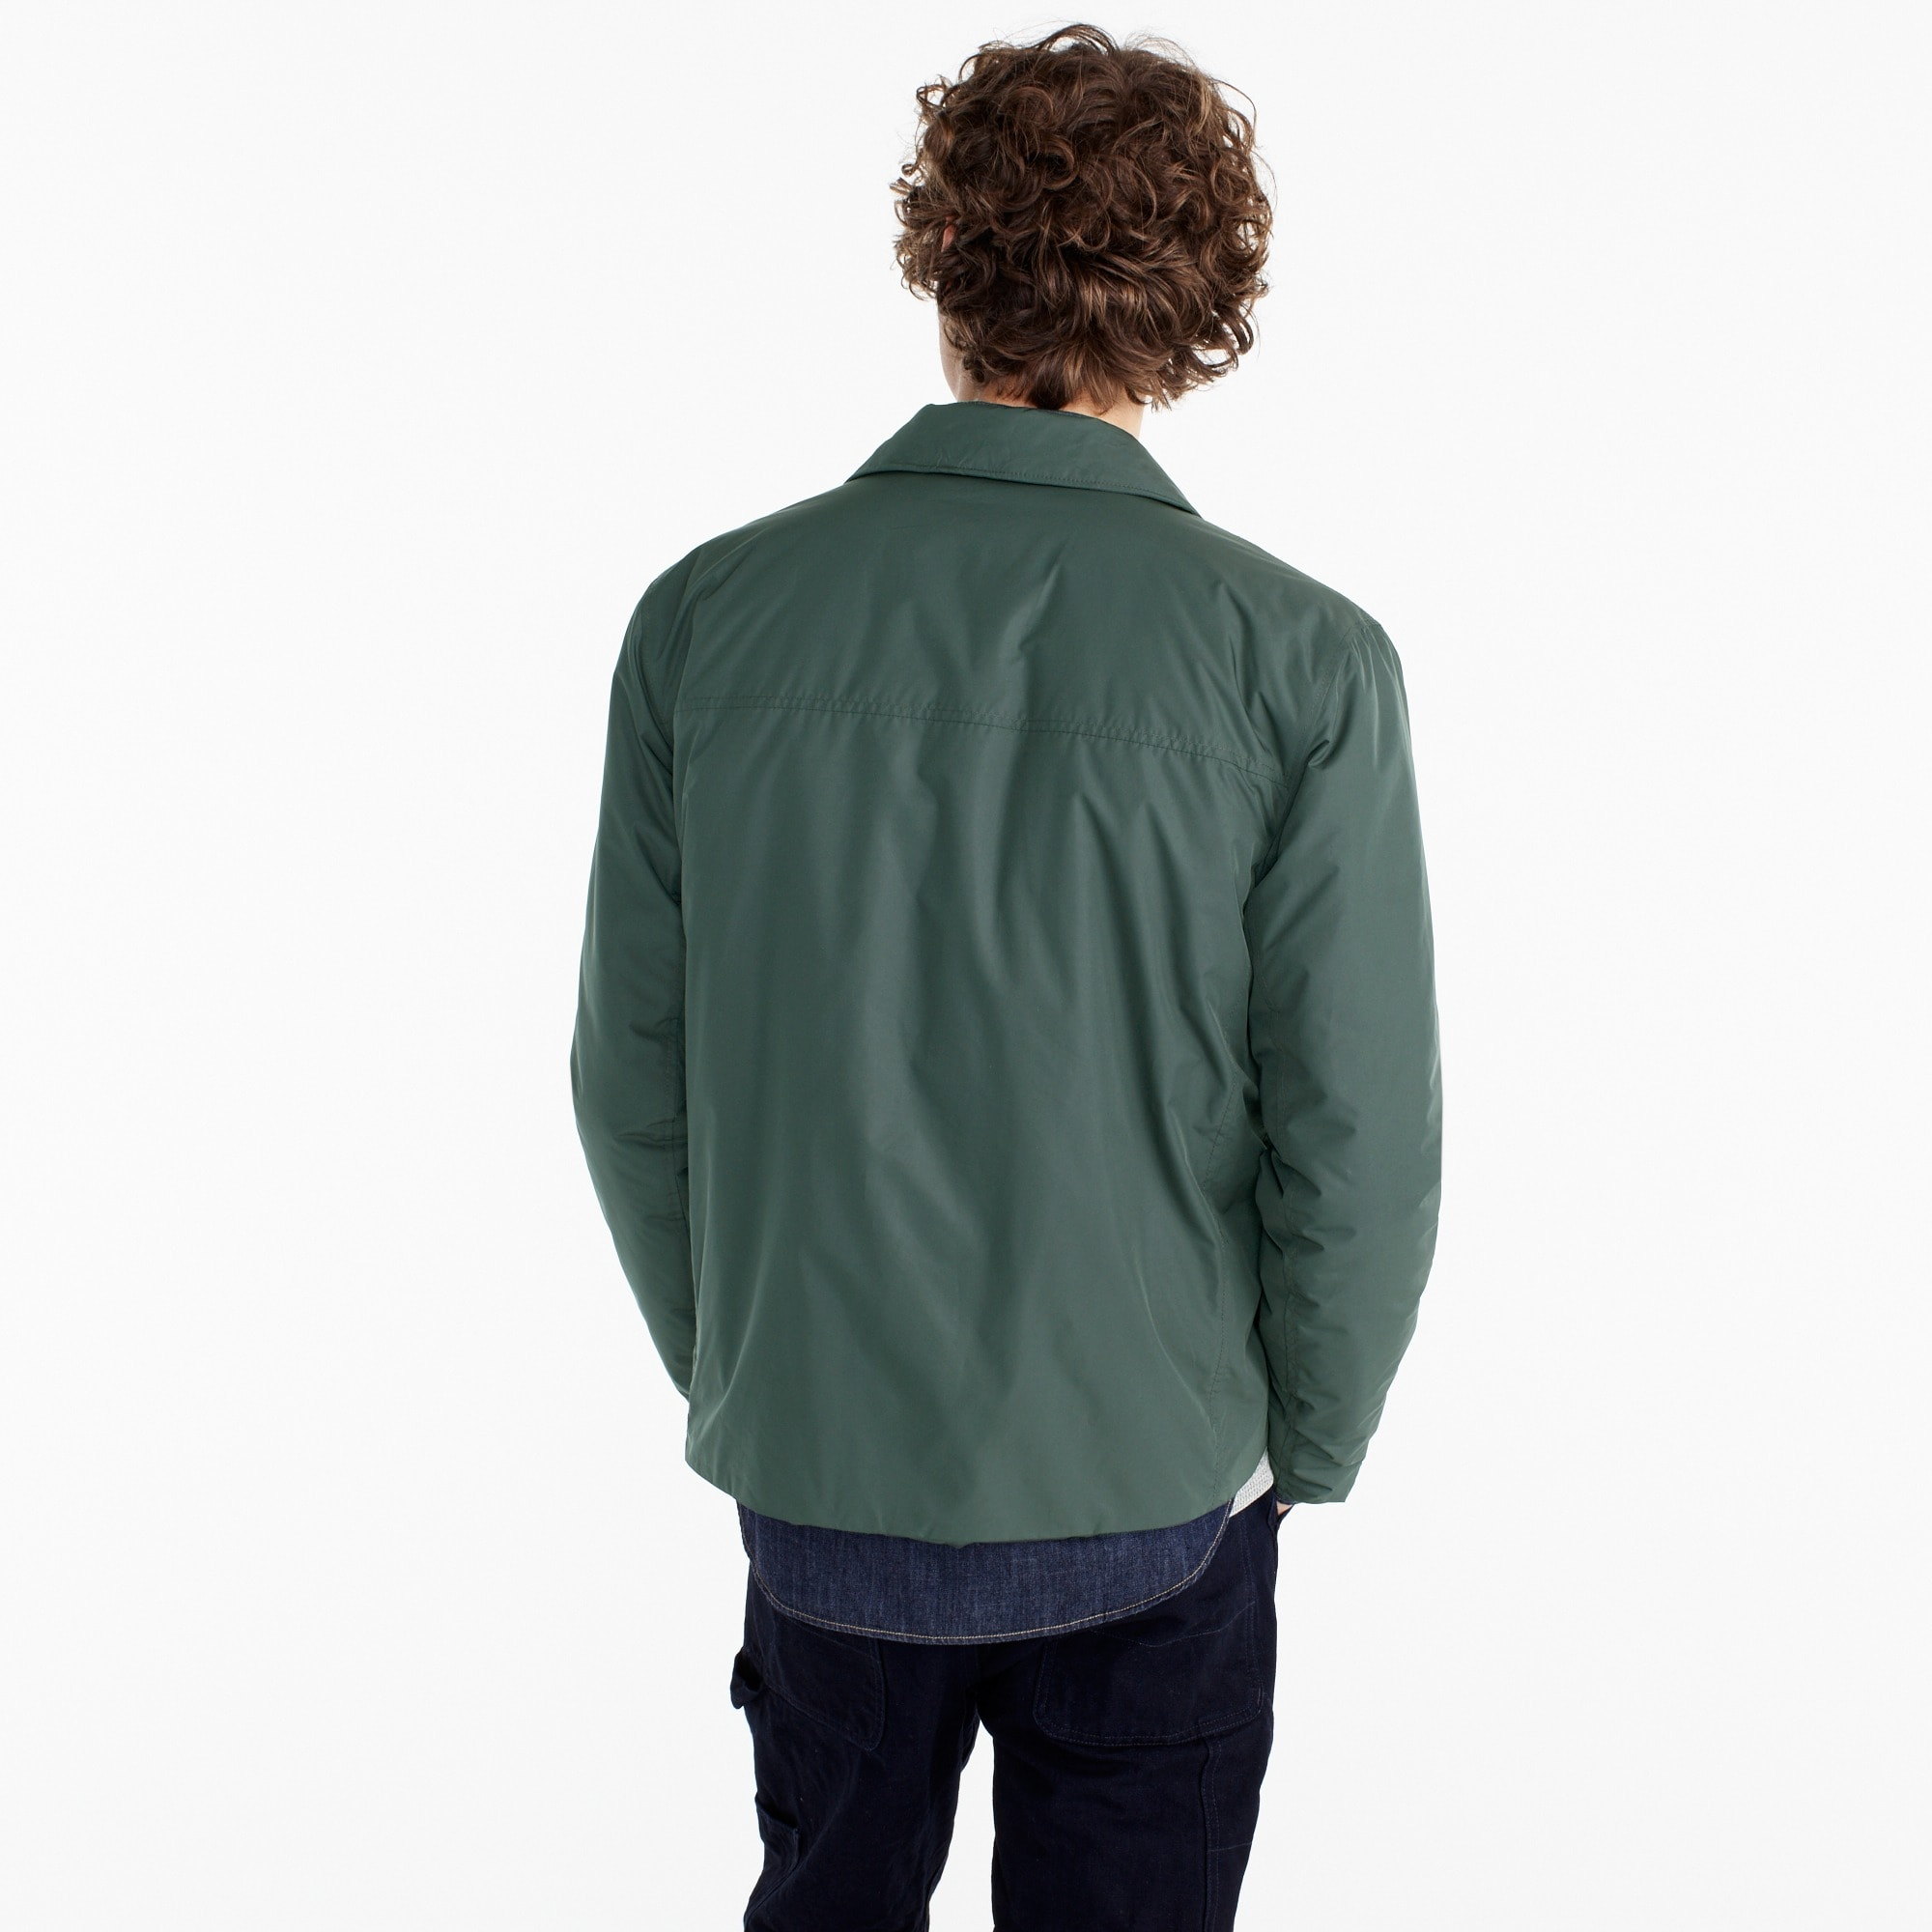 Norse Projects™ Ryan chore jacket